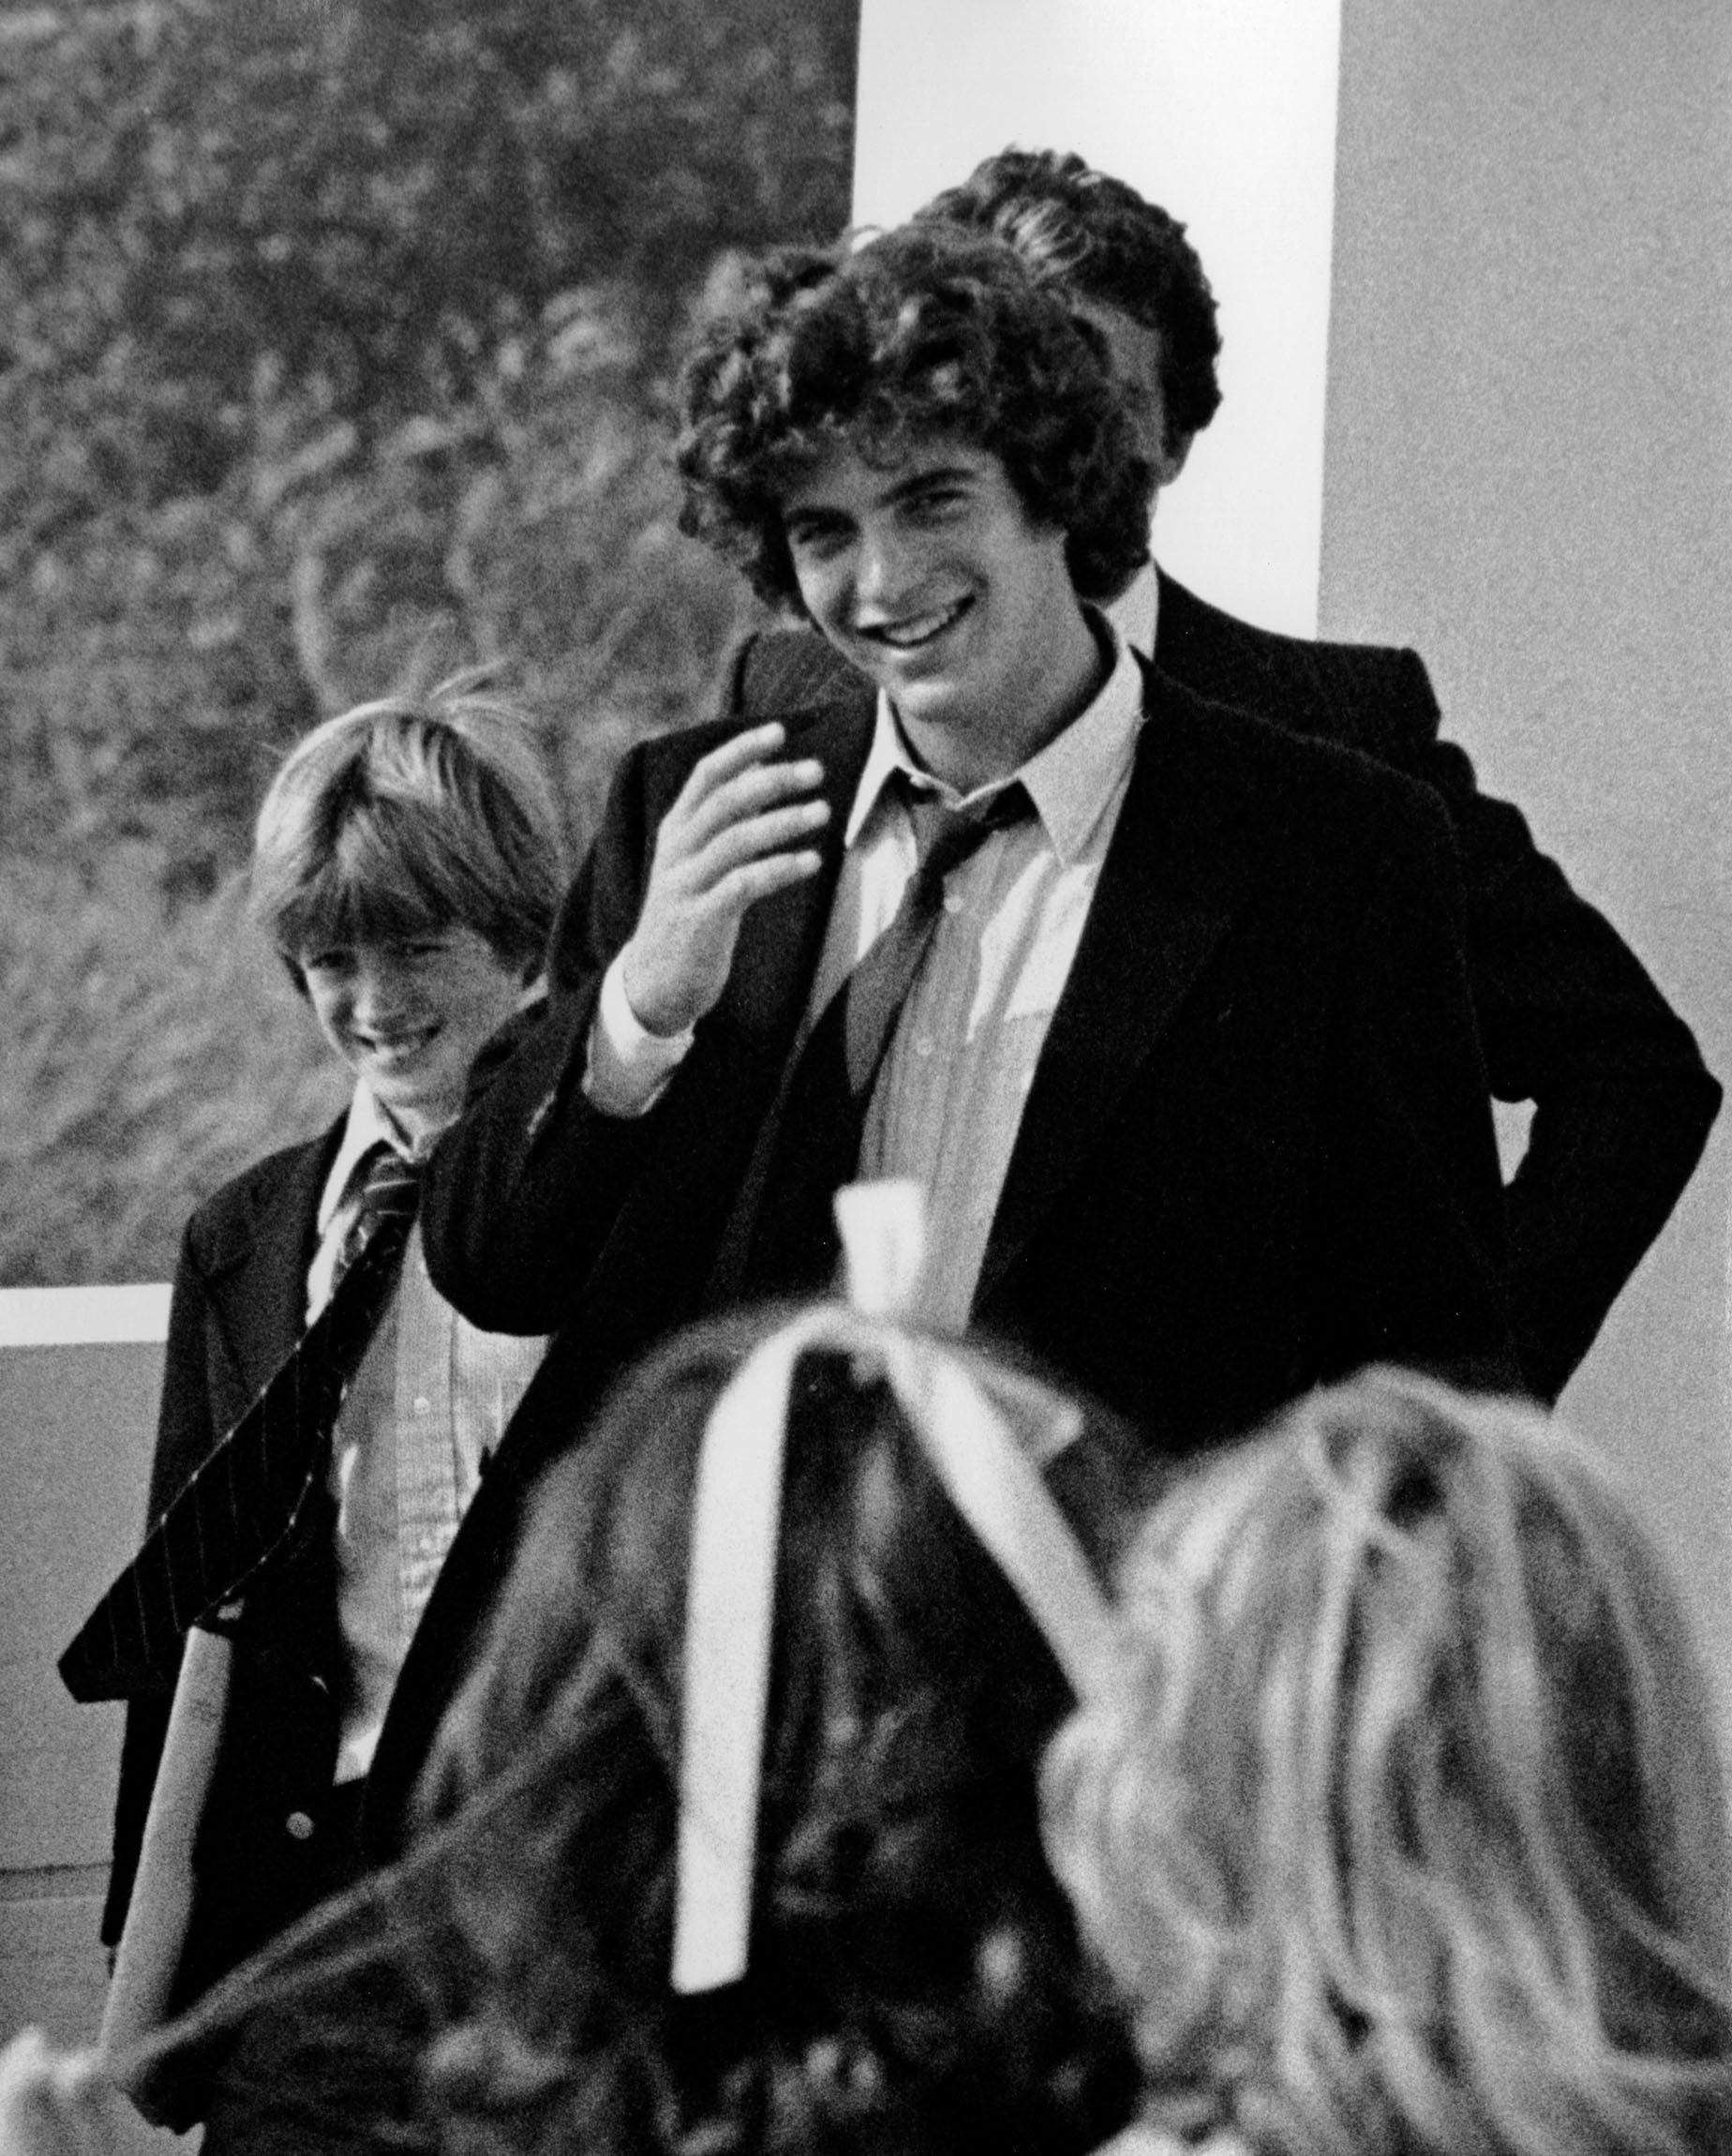 Patrick Kennedy and John F. Kennedy Jr. attend John F. Kennedy Library and Museum Dedication Ceremony on October 20, 1979 in Dorchester, Massachusetts.